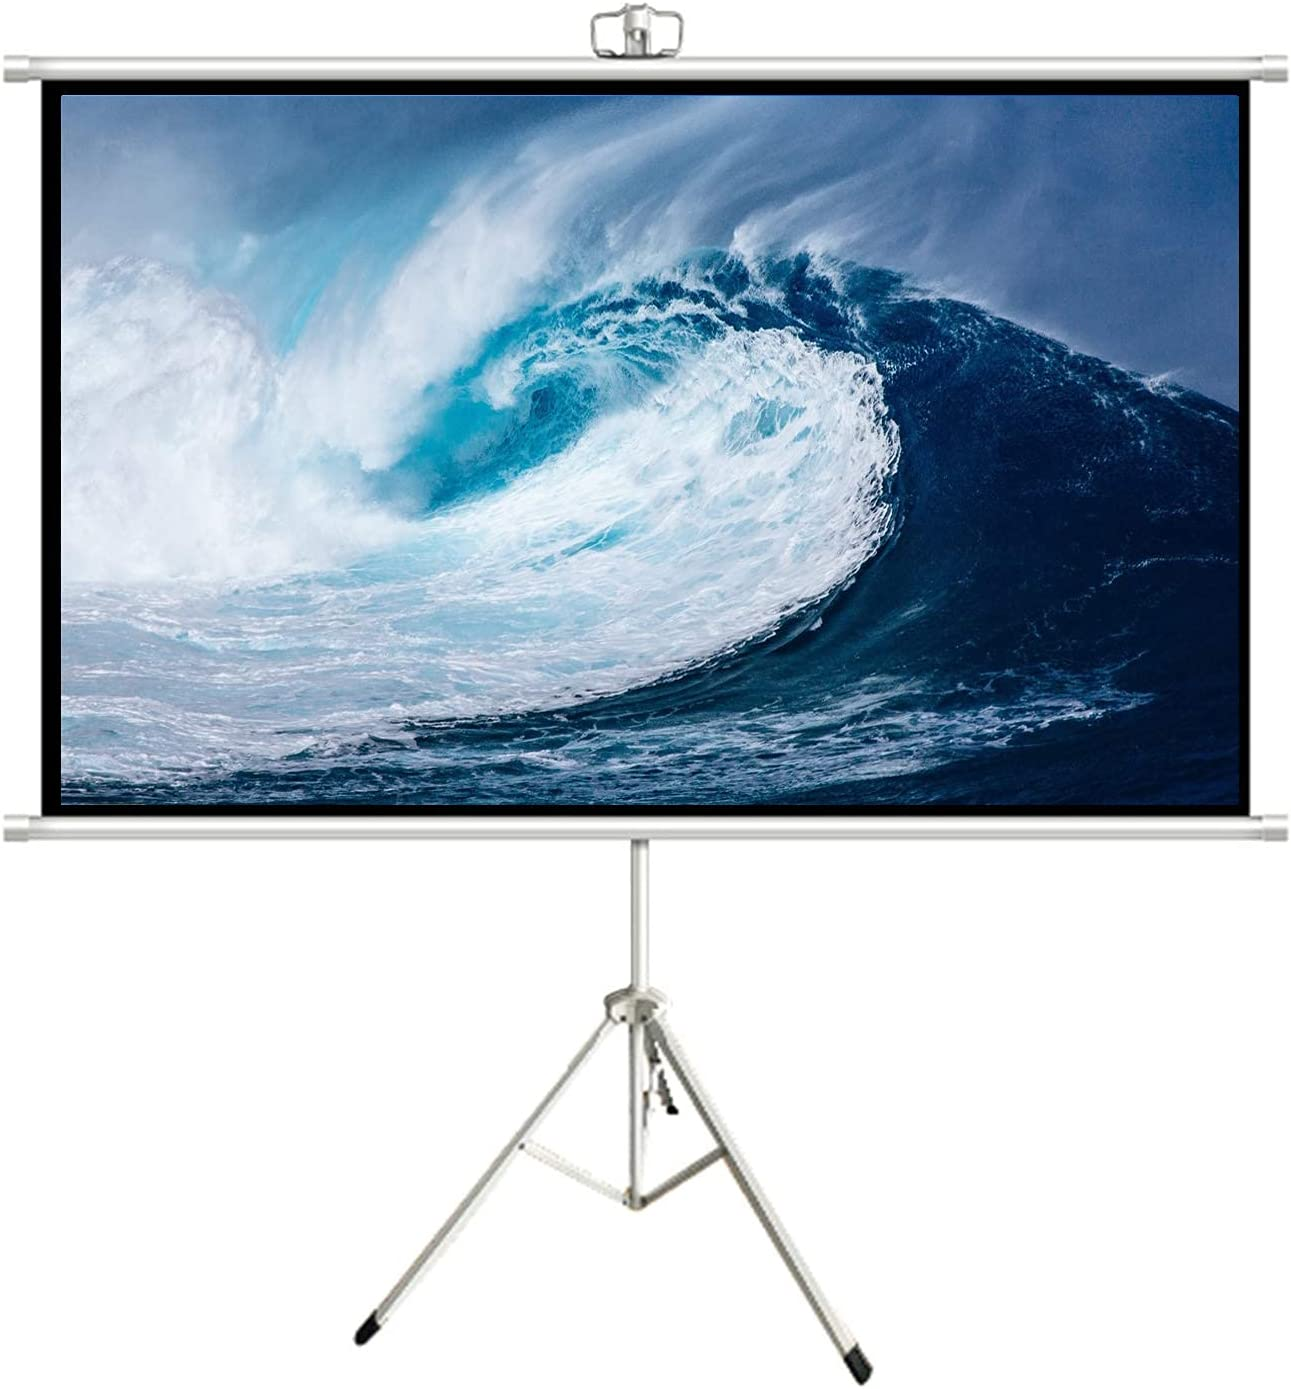 FMOGE Anti-Light Projector Screen 60 inch 4K HD 16:9 PVC Projection Screen Fast Assembly Design Movie Screens for Public Display Conference Presentation Party